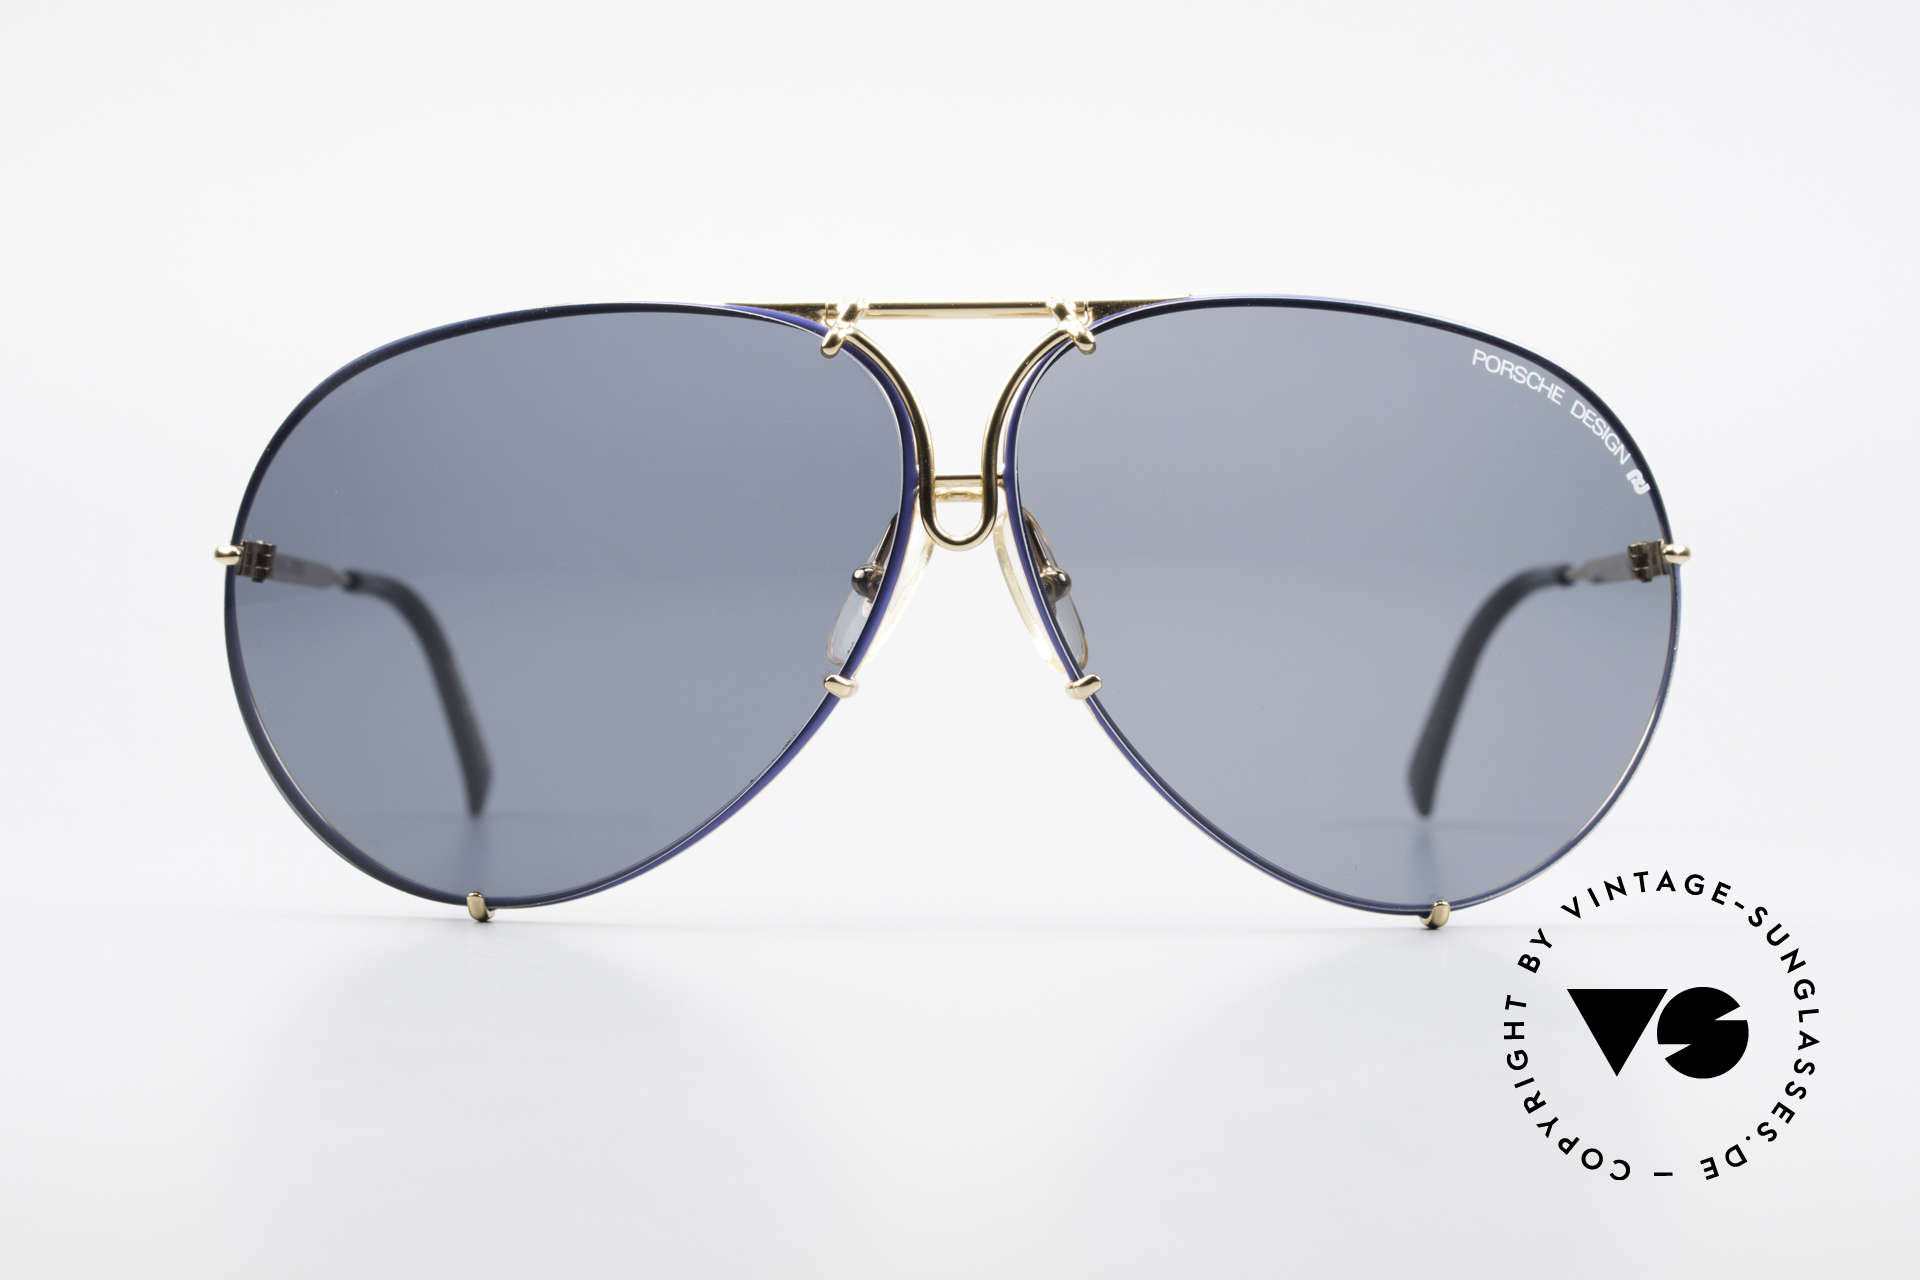 Porsche 5621 XL 80's Aviator Shades Limited, unworn rarity in LARGE SIZE; incl. orig. Porsche case, Made for Men